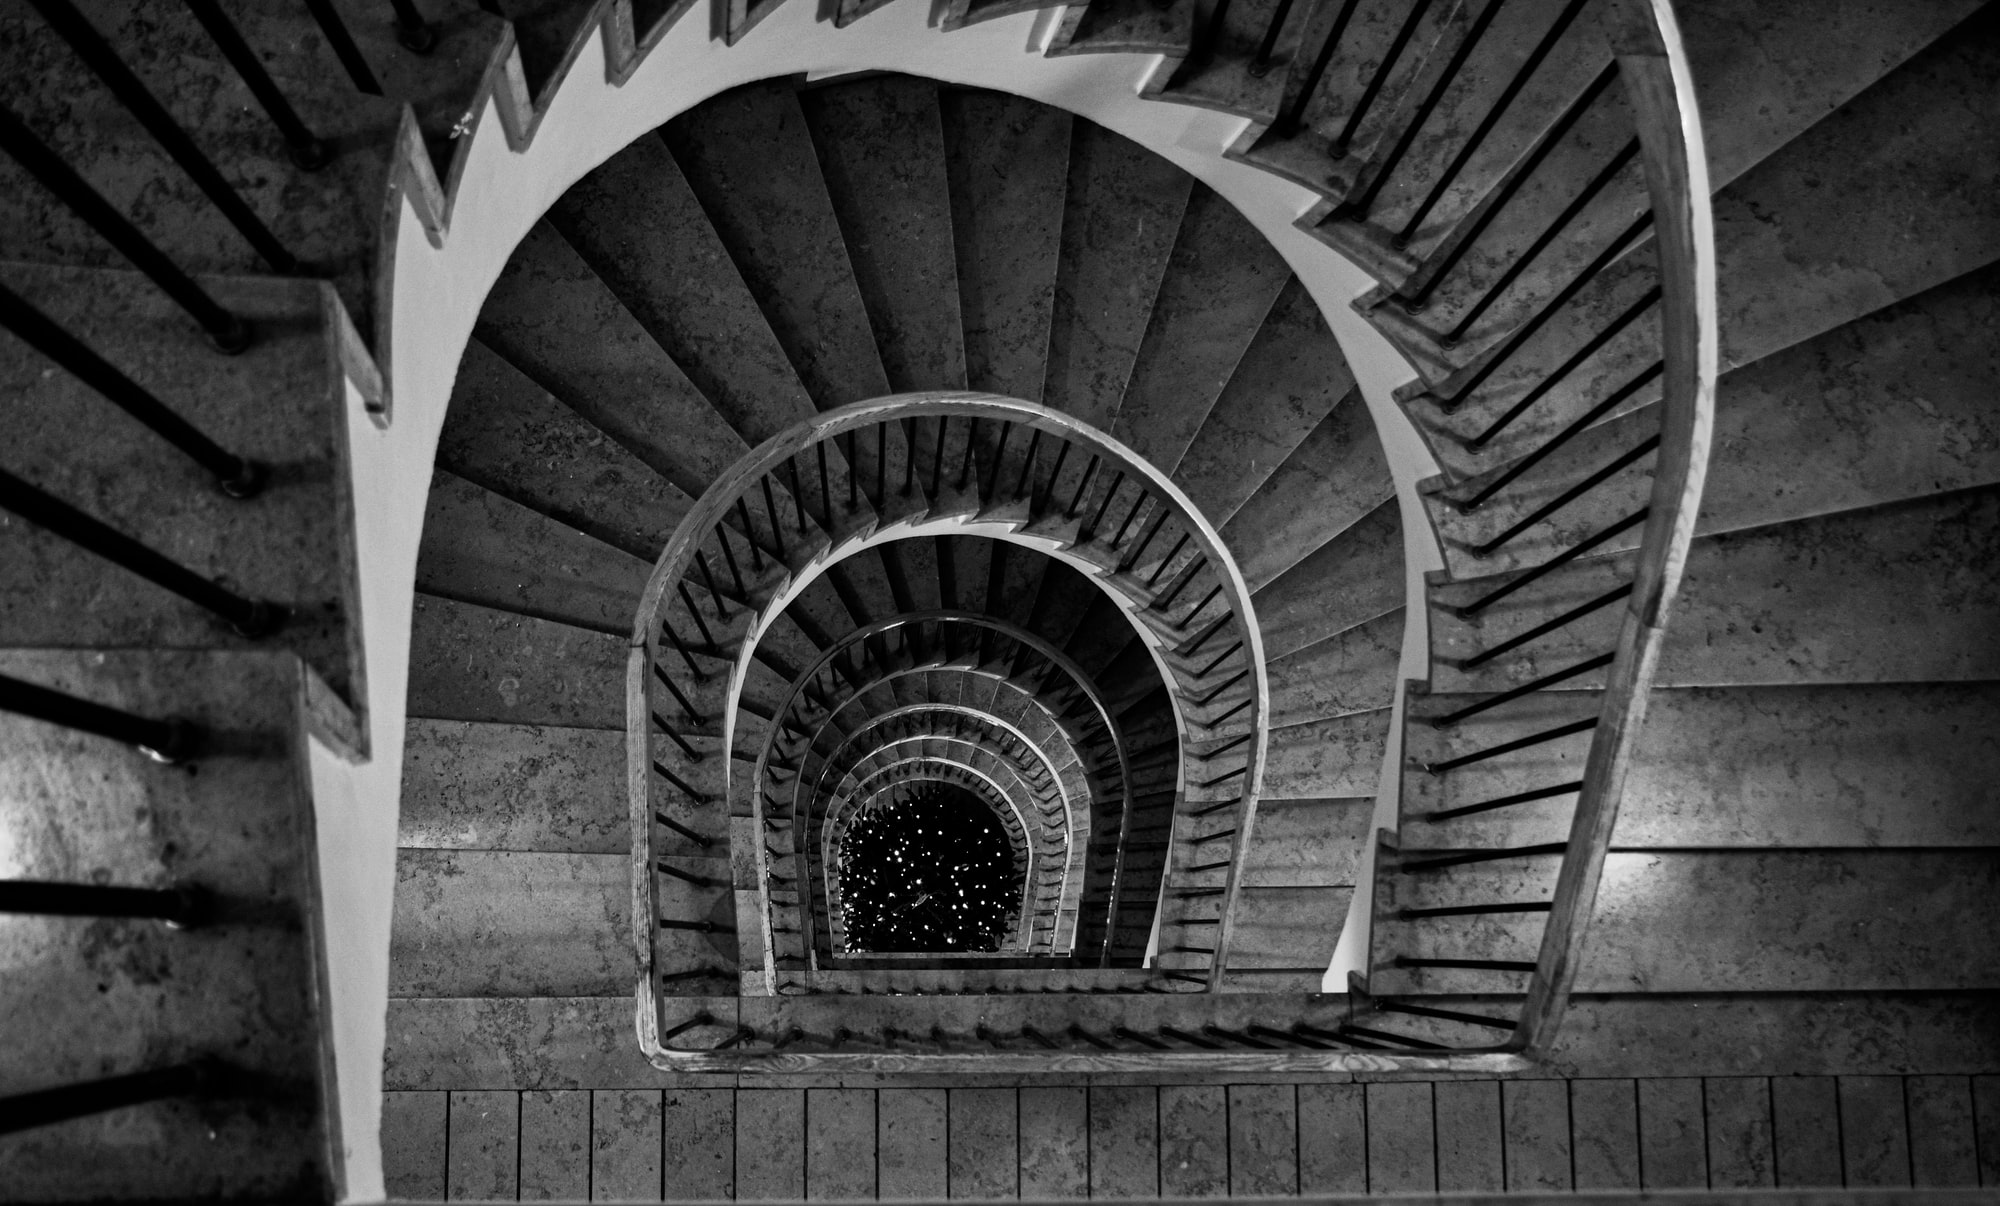 Top angle shot of a spiral of stairs